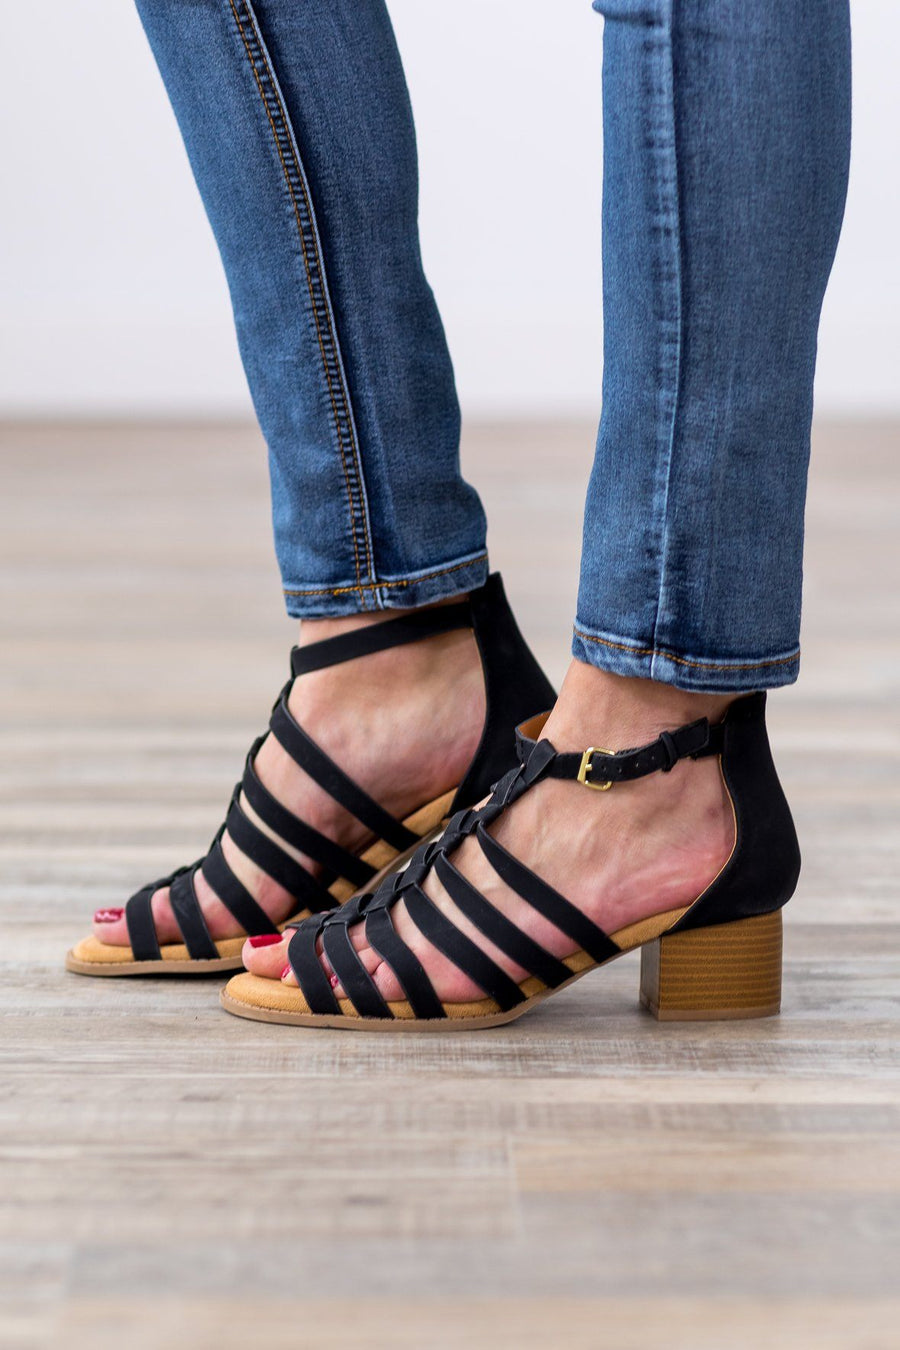 70fd3e5d4 Beyond This World Open Toe Strappy Sandal Heels in Black